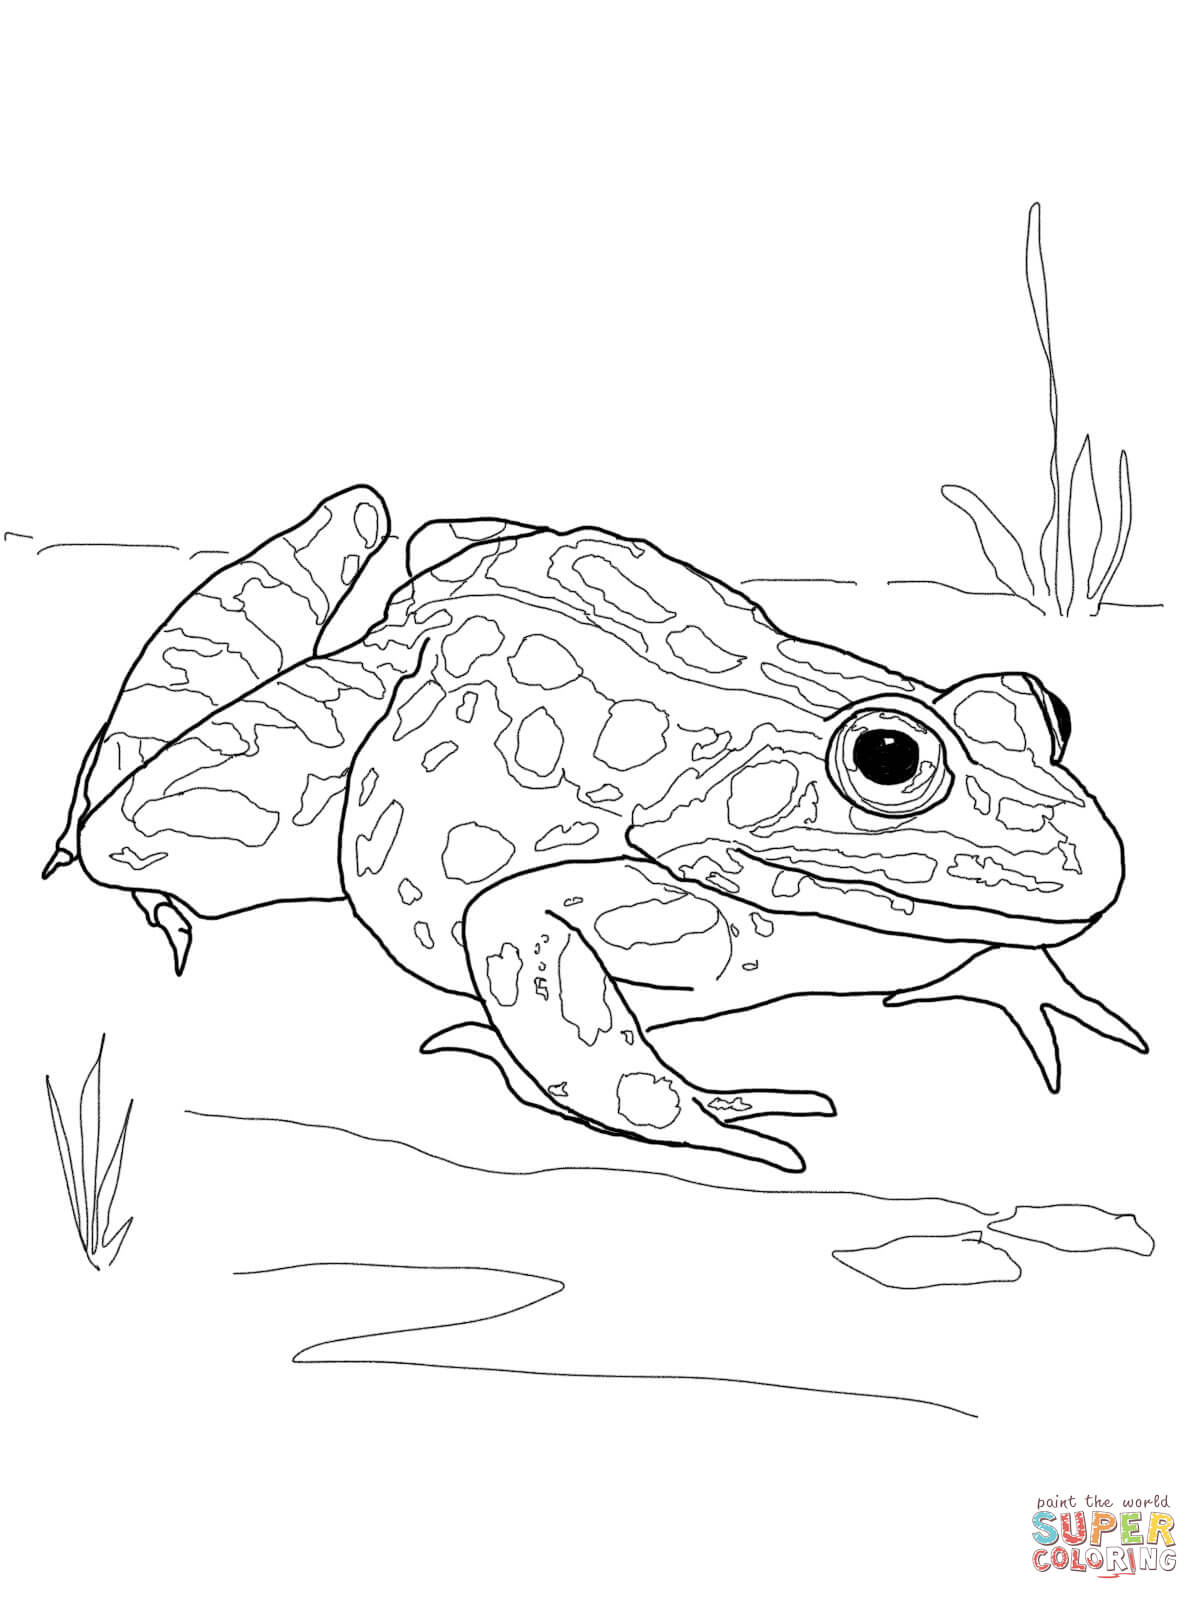 Poison Dart Frog Coloring Page Coloring Home Coloring Coloring Pages